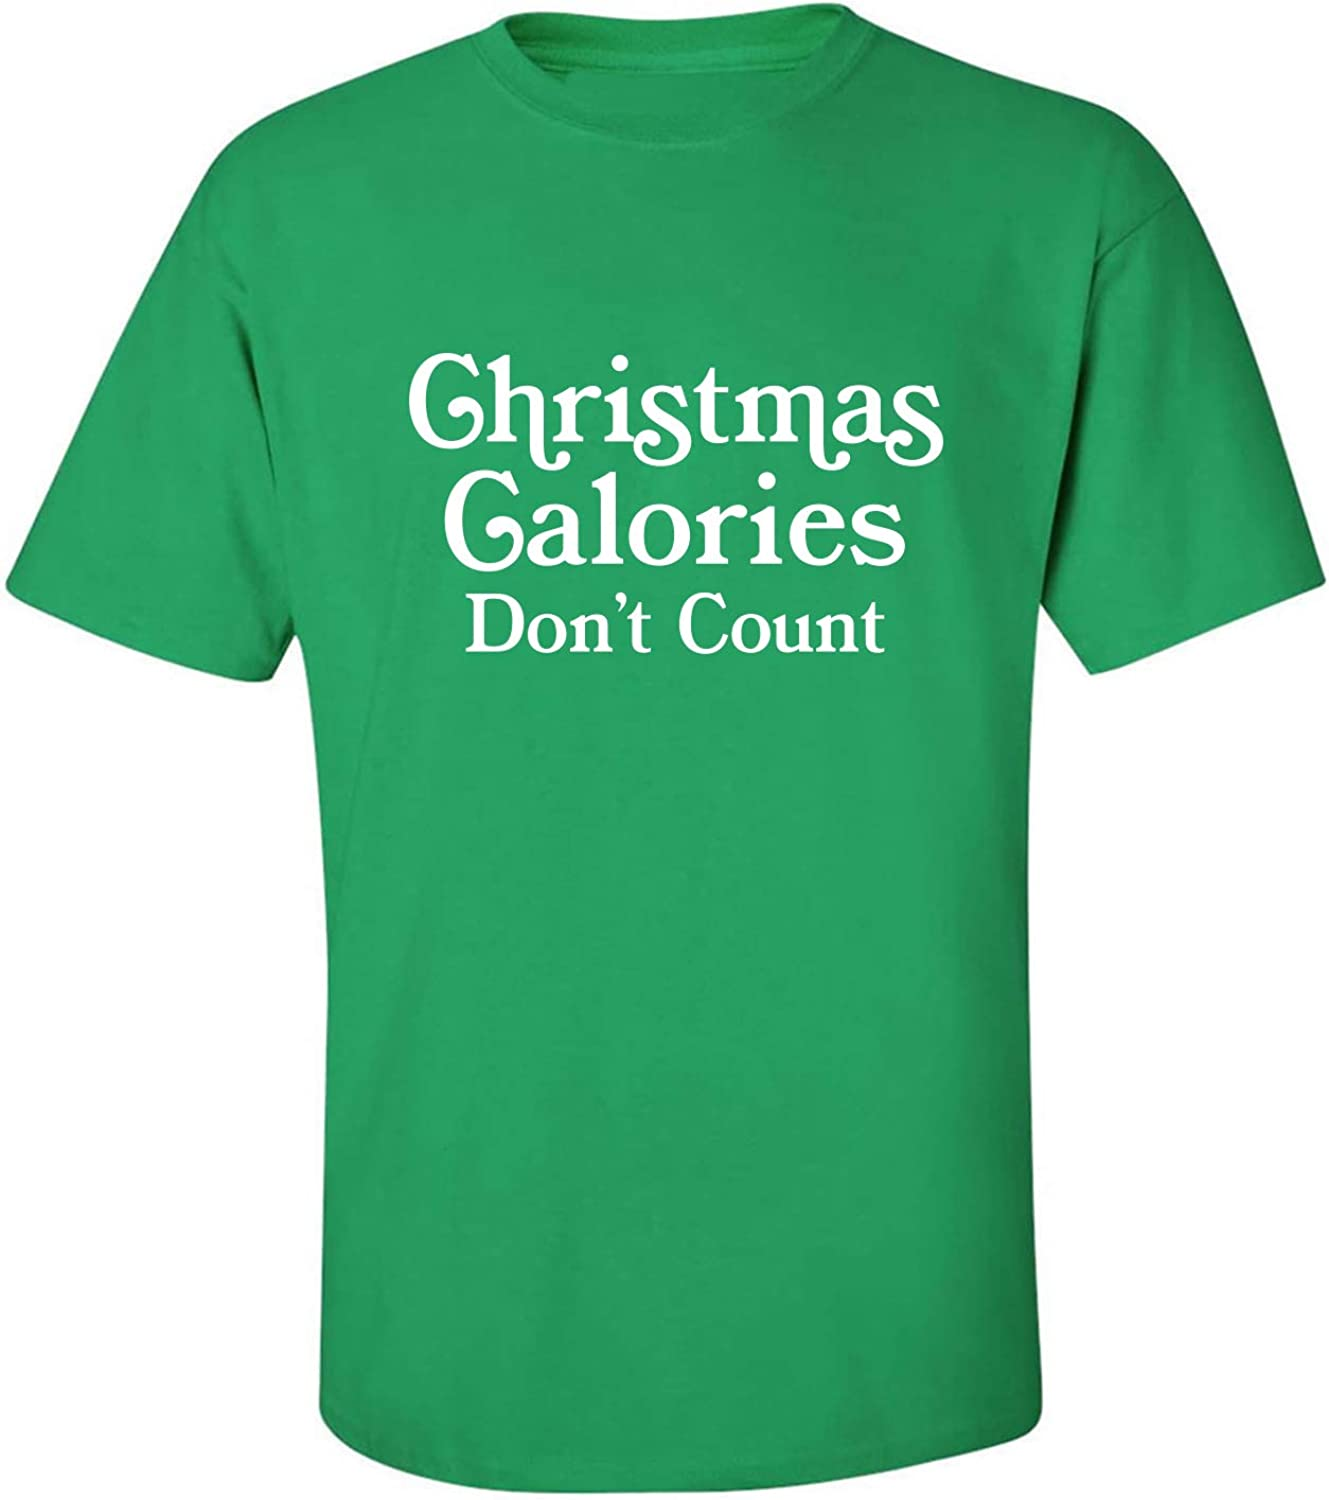 Christmas Calories Don't Count Adult T-Shirt in Kelly Green - XXX-Large